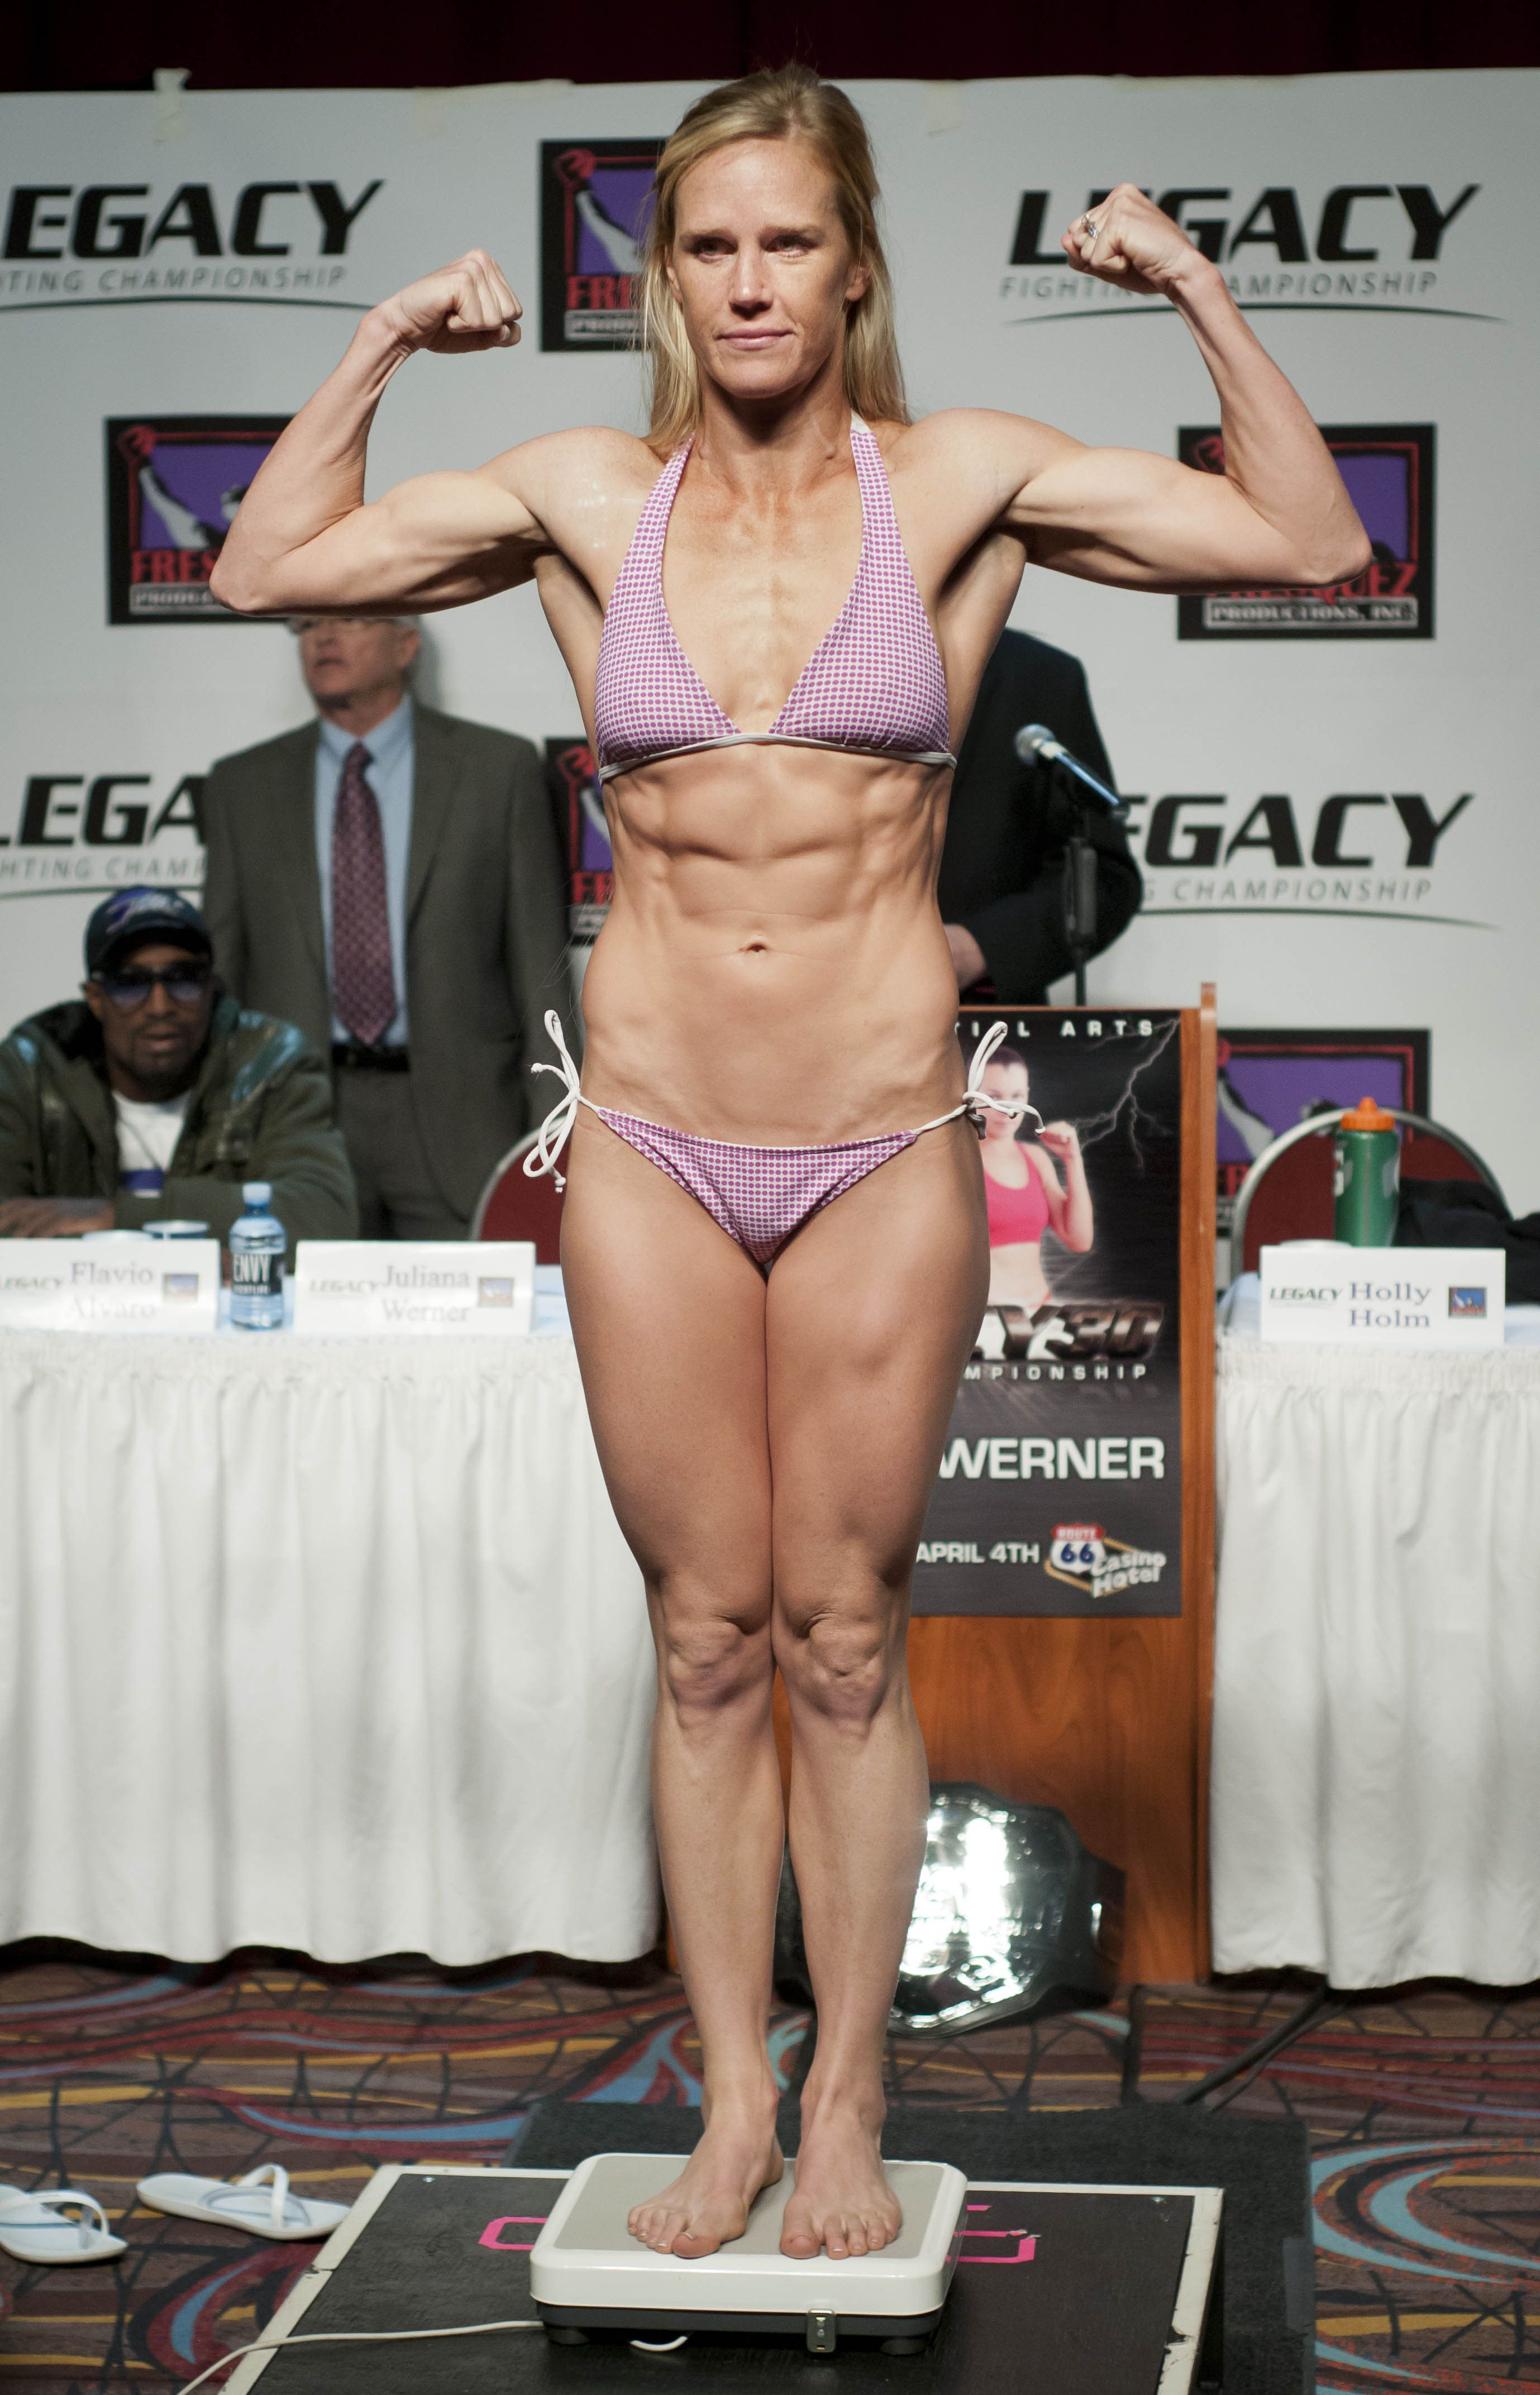 The B. reccomend holly holm nude photos